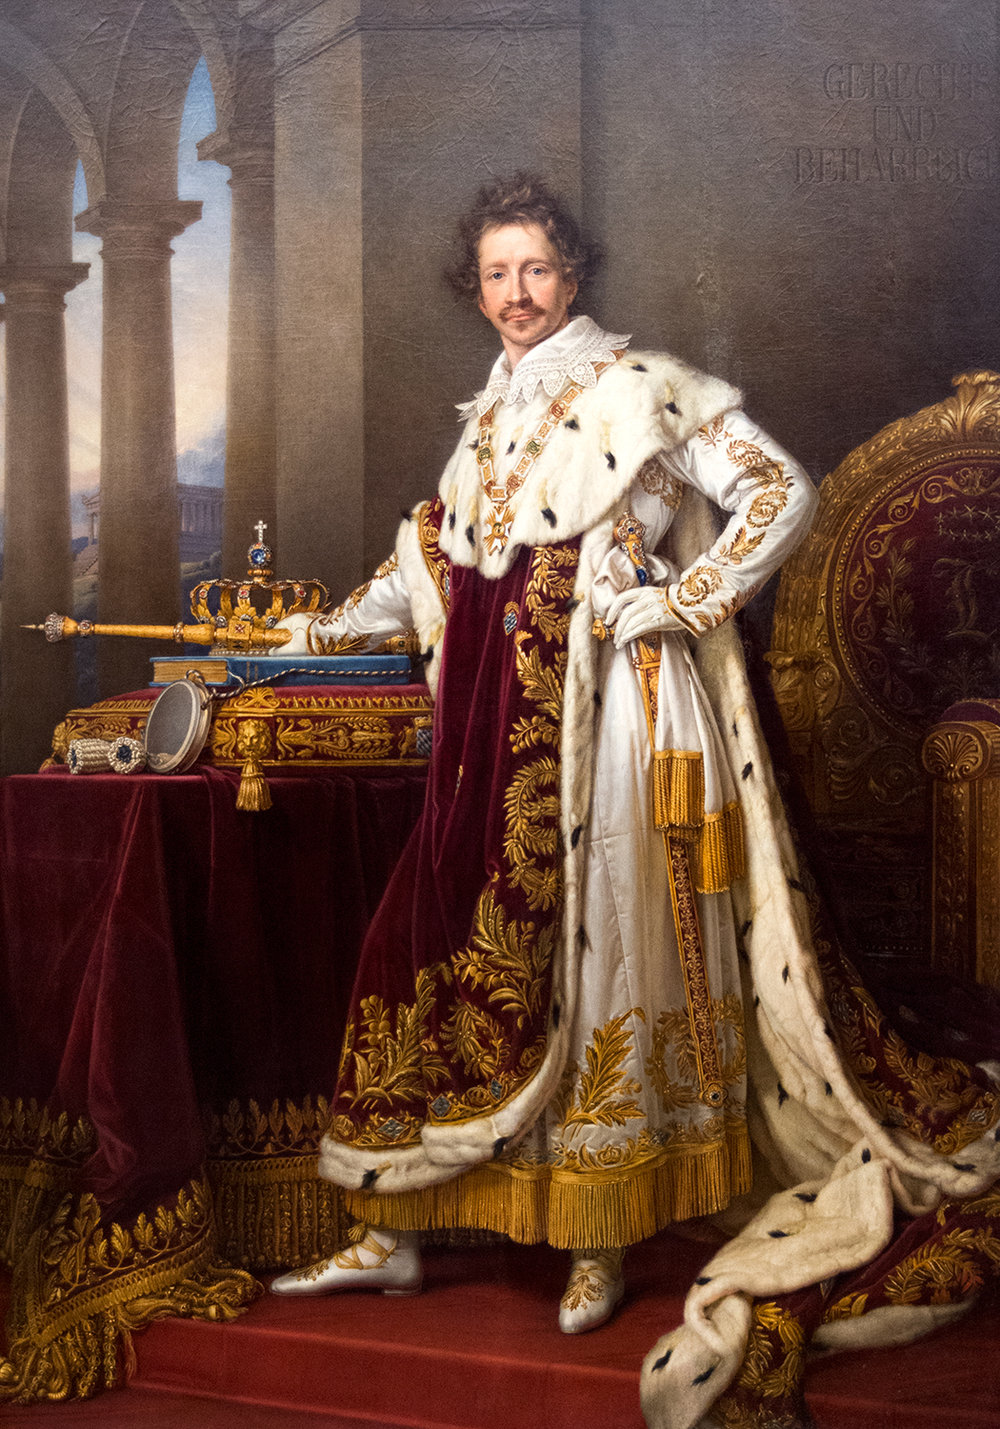 Joseph Stieler (1781-1858),  King Ludwig I of Bavaria  [builder of the Alte and Neue Pinakotheken]  in Coronation Robes  (1826), Neue Pinakothek